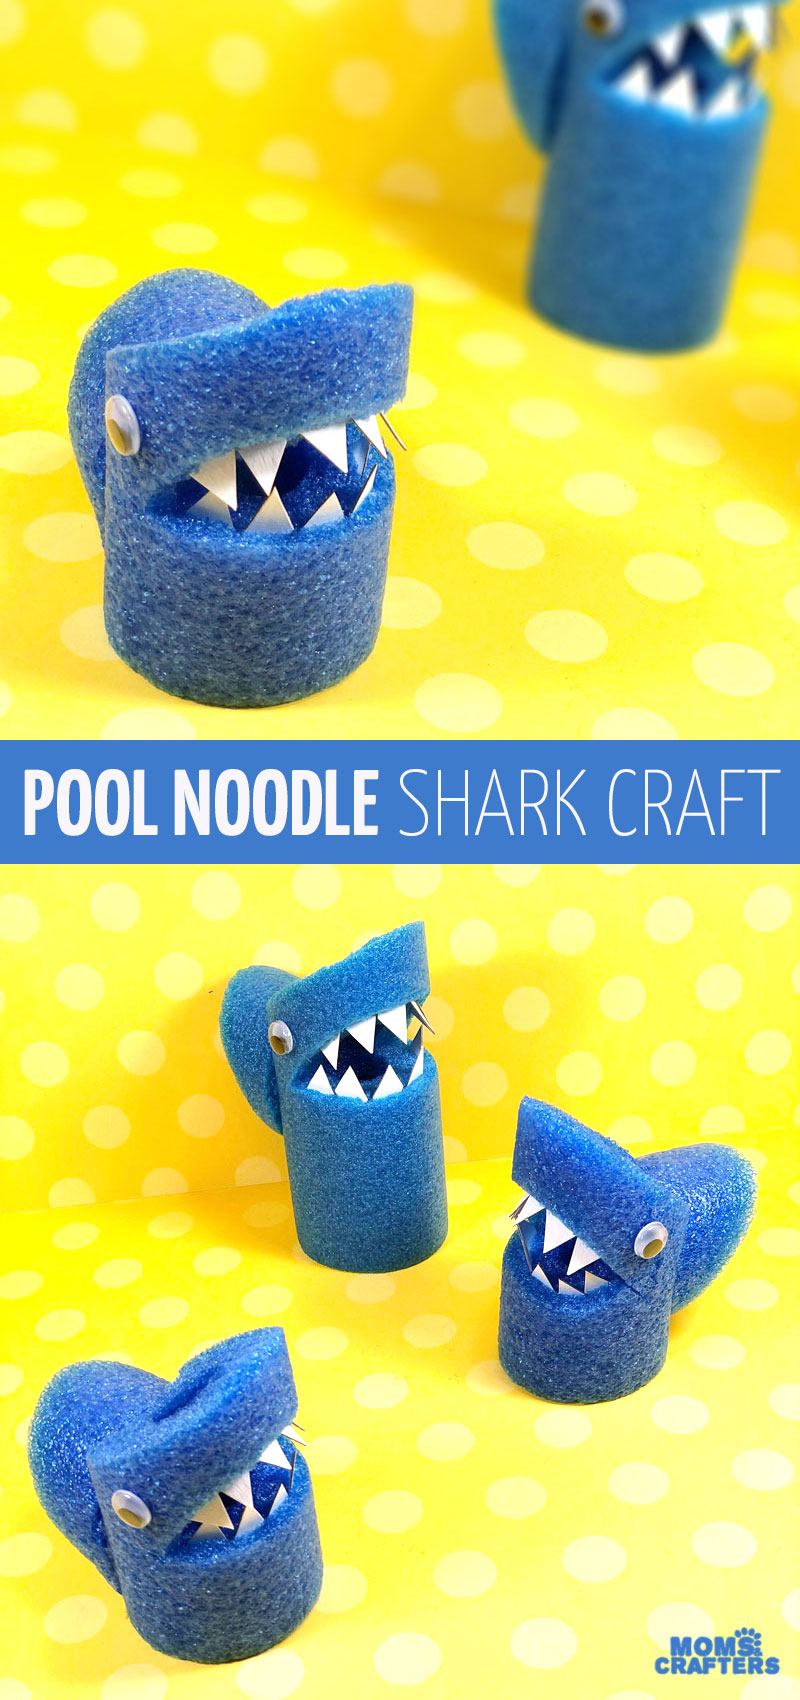 Make this adorable pool noodle shark craft for shark week or summer! This adorable dollar store craft uses pool noodles in a fun repurposed craft for kids.